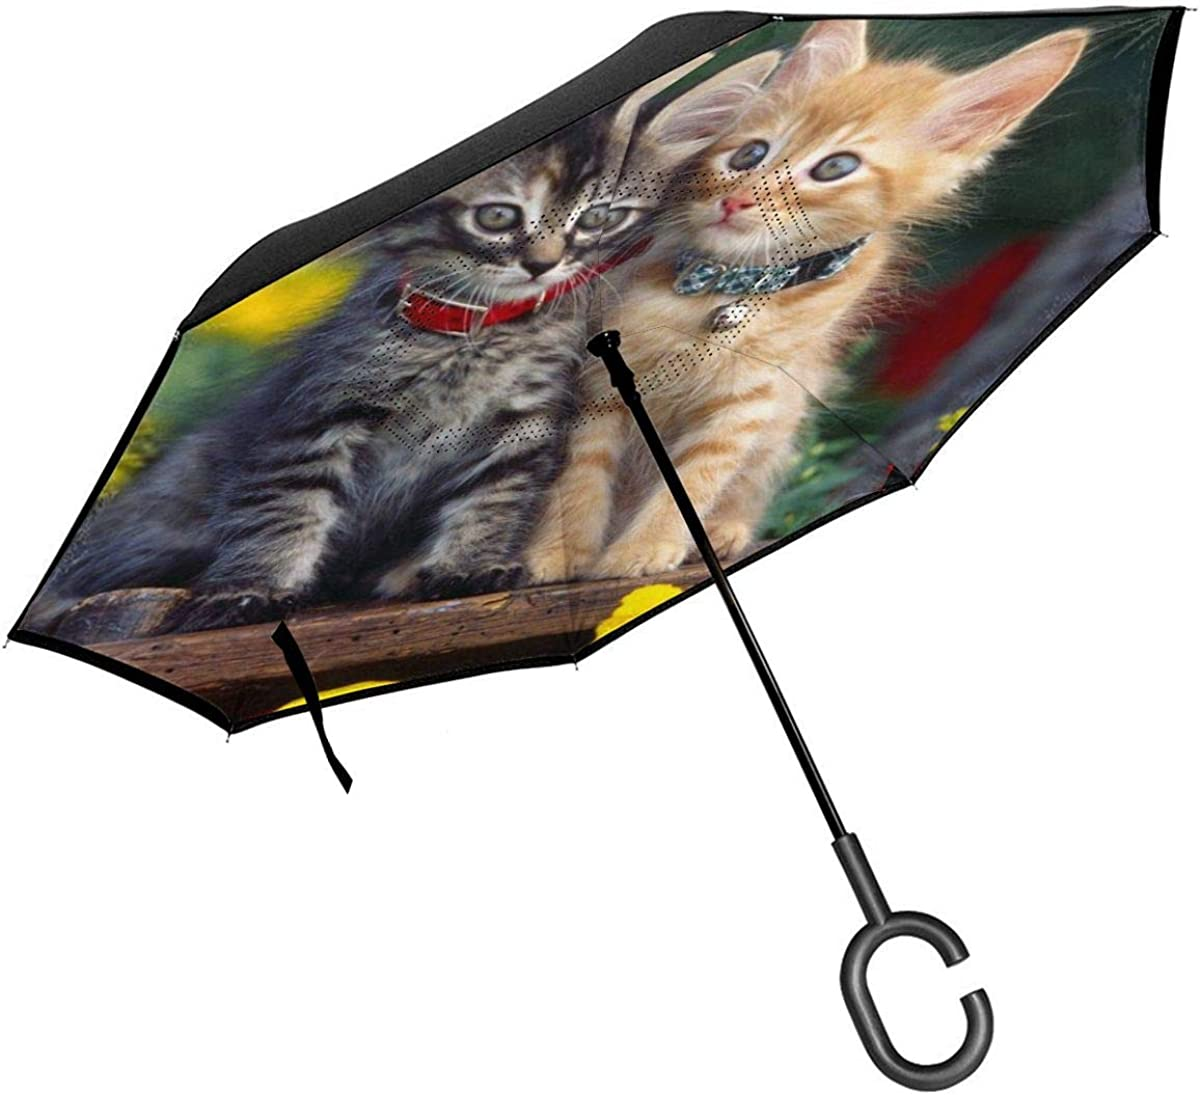 Reverse Umbrella Double Layer Inverted Umbrellas For Car Rain Outdoor With C-Shaped Handle Animal Cat Cute Flower Kitten Customized